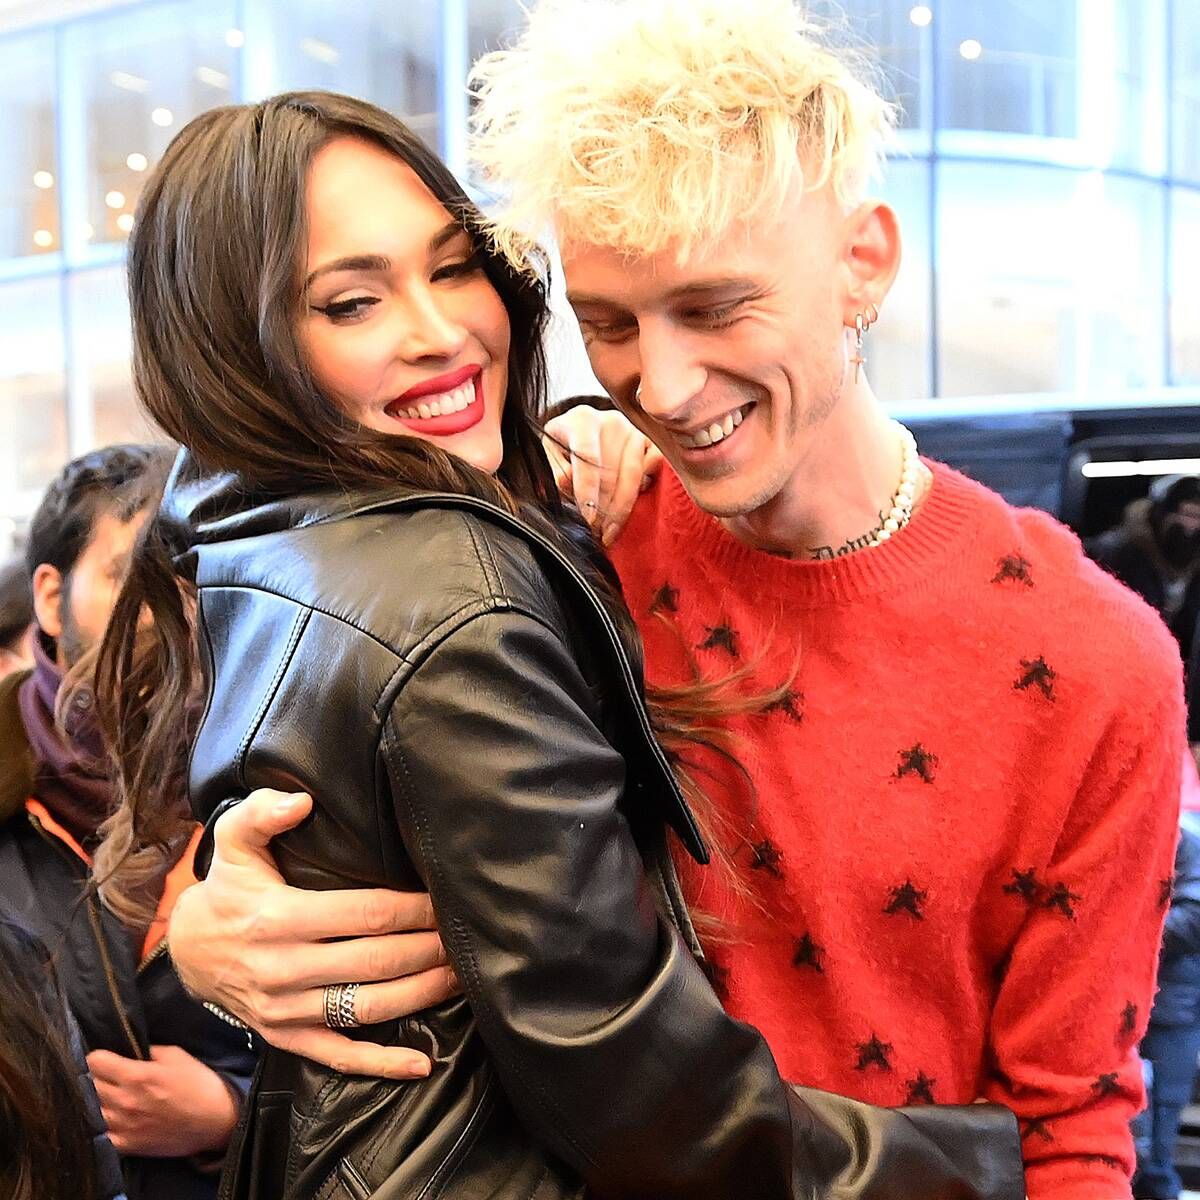 Megan Fox's Comment About Machine Gun Kelly's SNL Set Proves She's Not Here to Make Friends